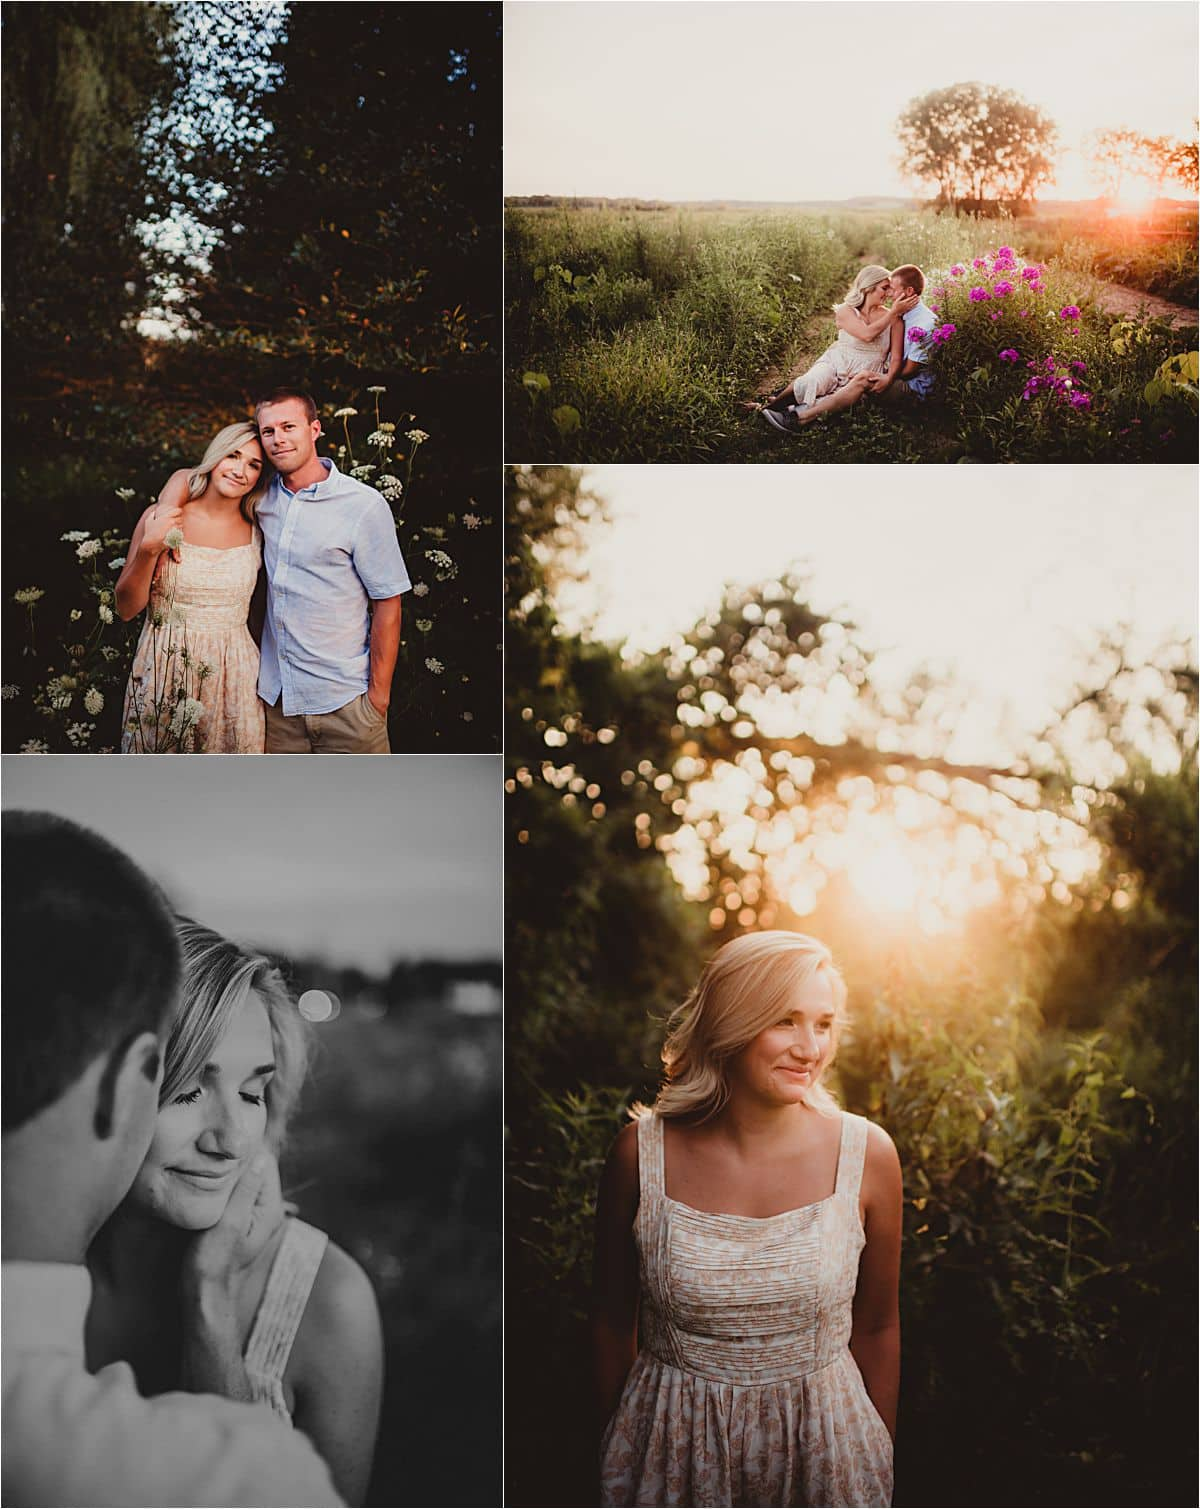 Dreamy Summer Engagement Session Couple at Sunset